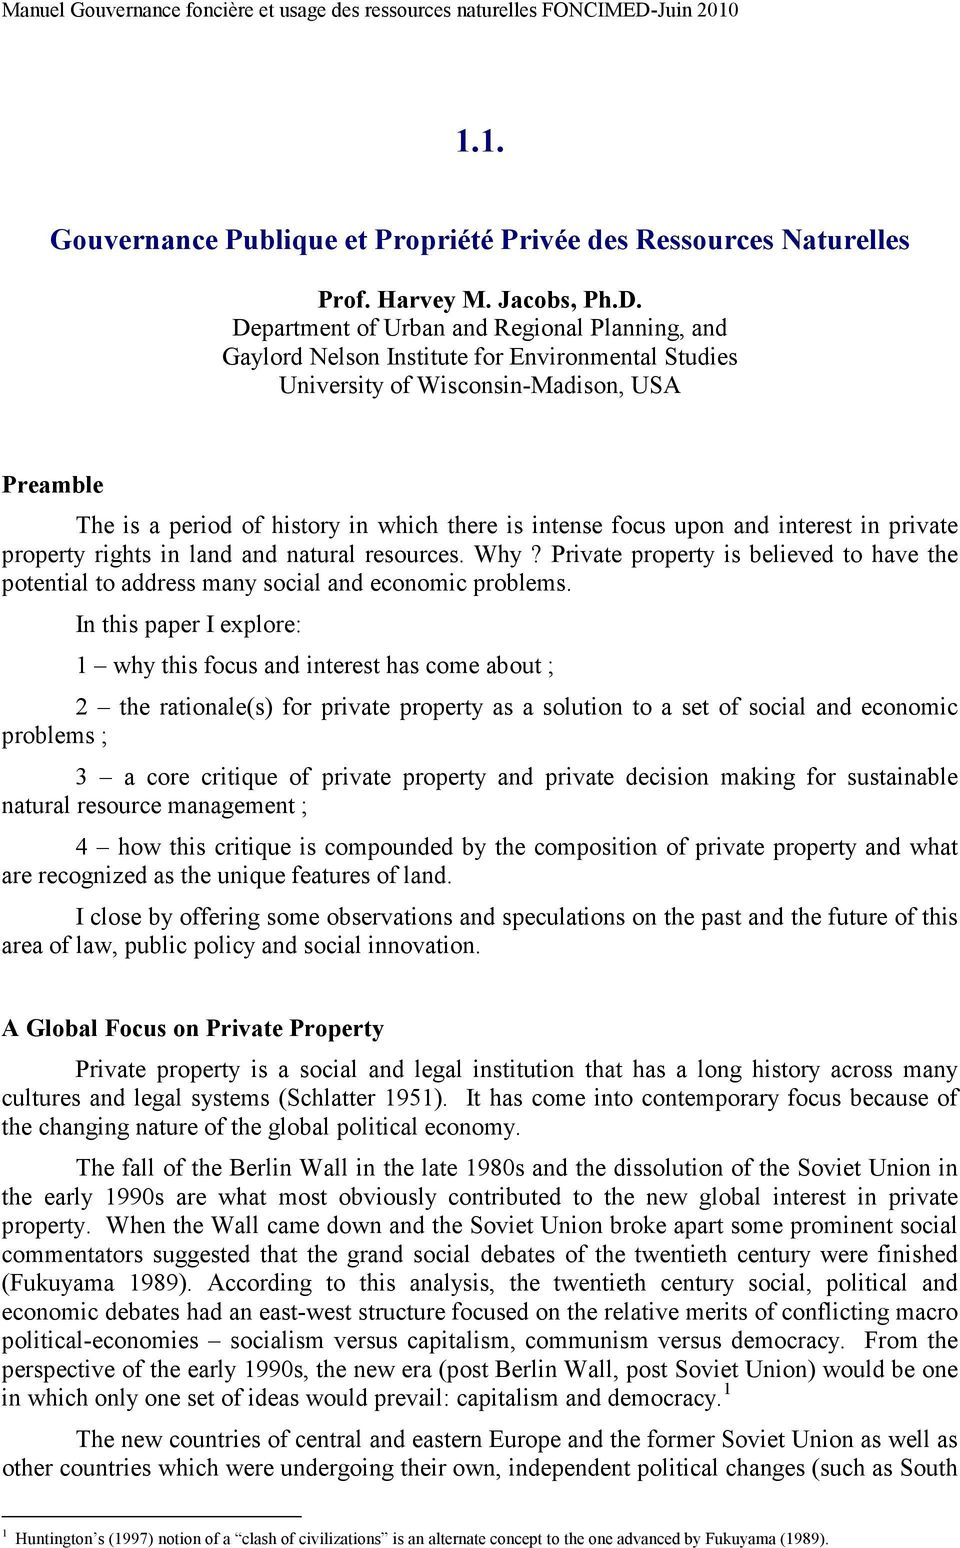 focus upon and interest in private property rights in land and natural resources. Why? Private property is believed to have the potential to address many social and economic problems.